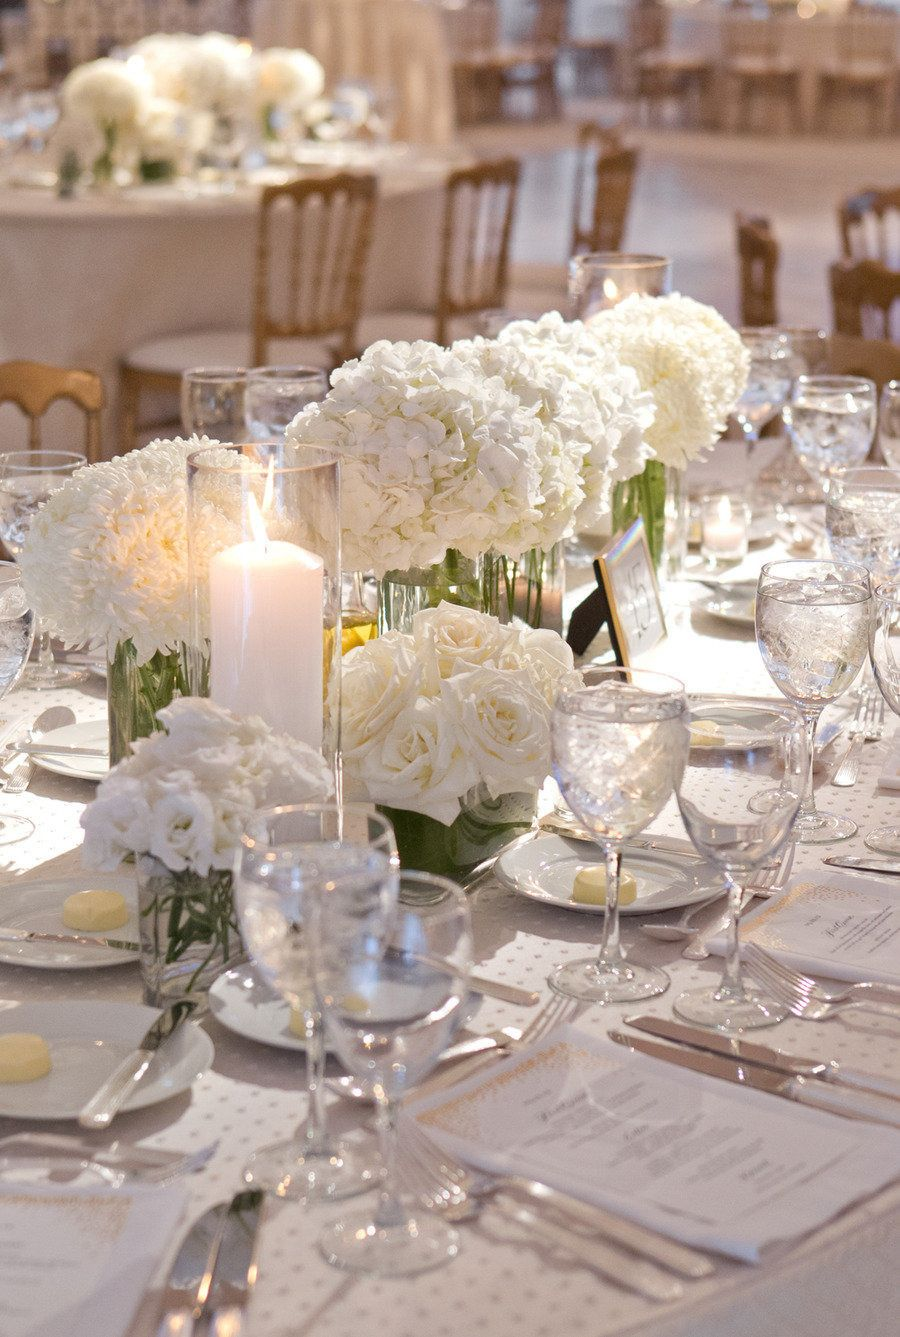 All White Candles Flowers Table Plates Tablescapes Pinterest